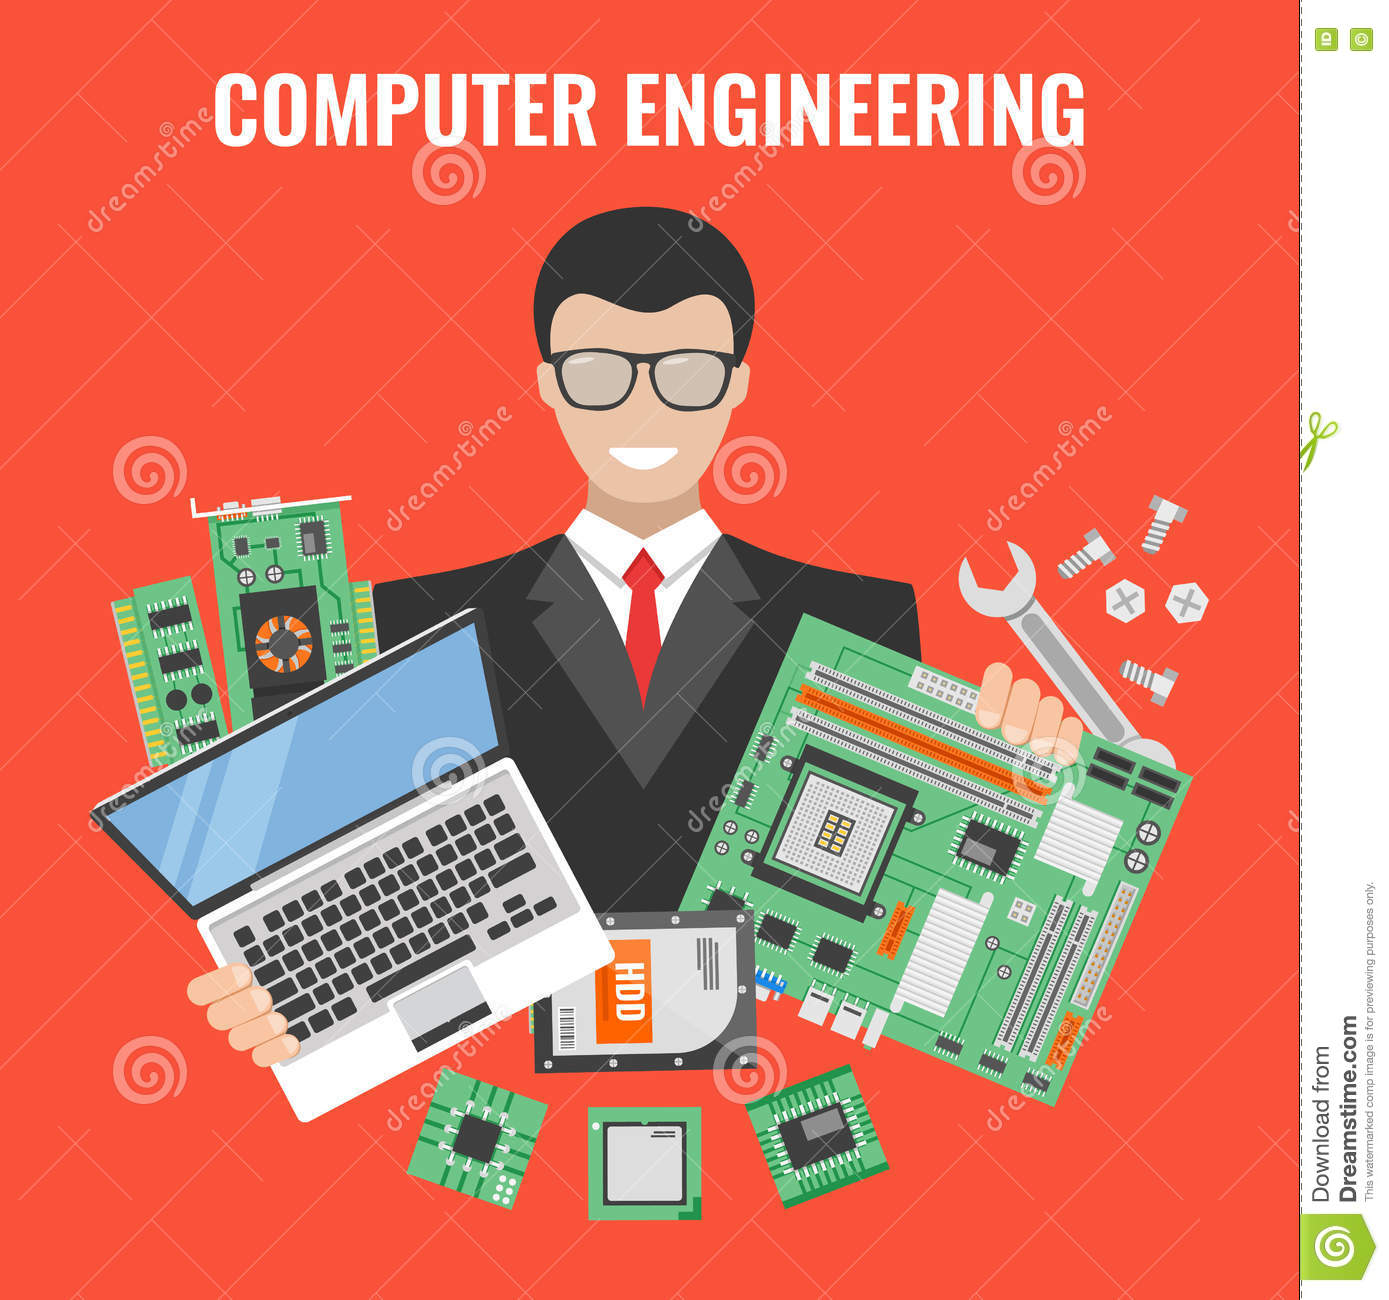 Computer Engineering Flyer stock vector. Illustration of person.